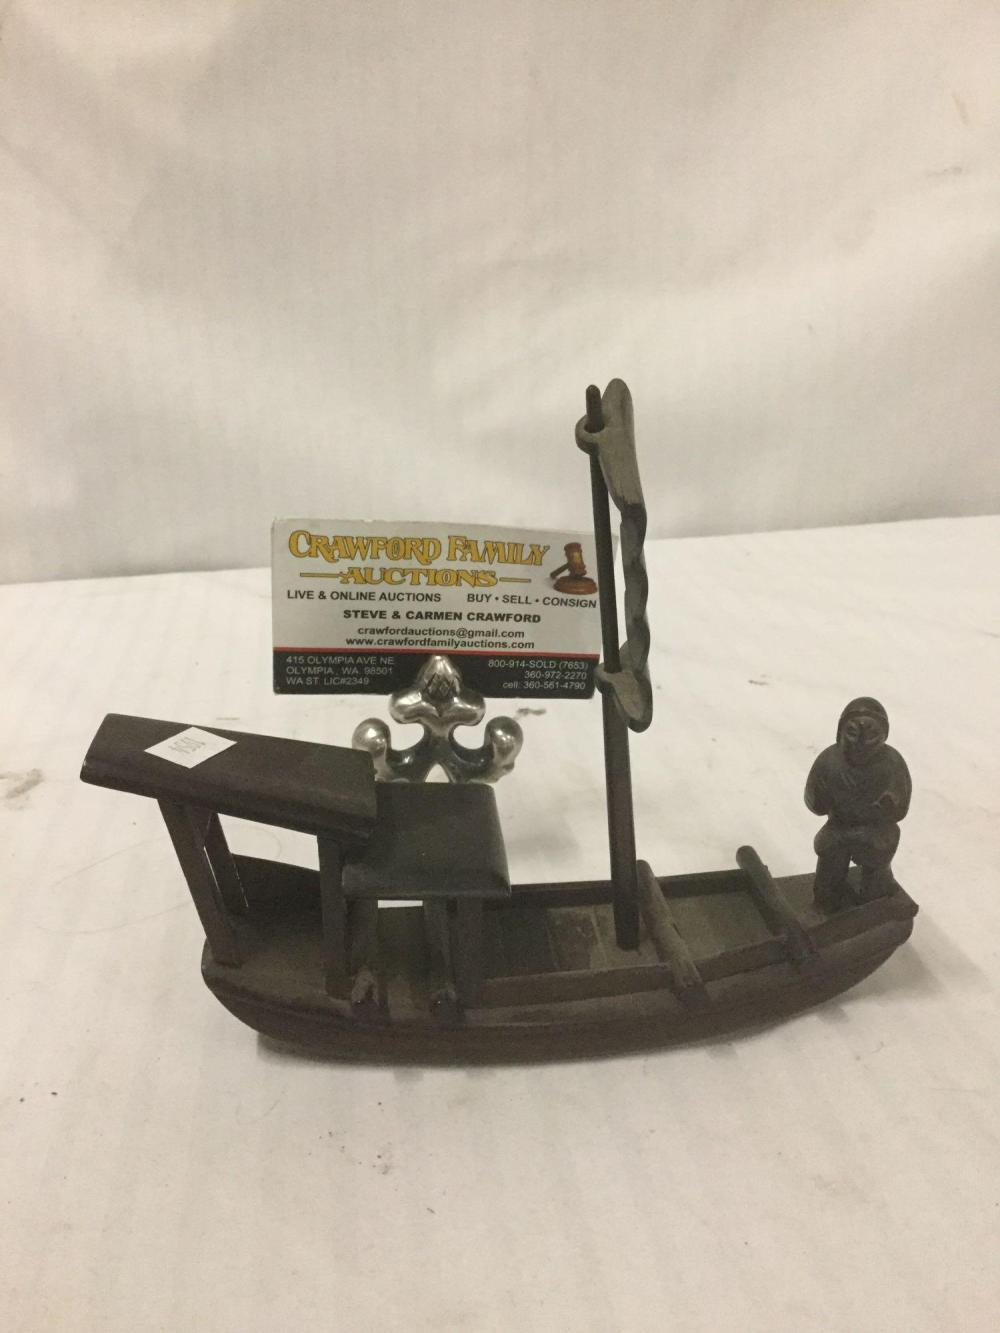 Lot 181: Vintage carved wood junk boat with affixed sailor - as is